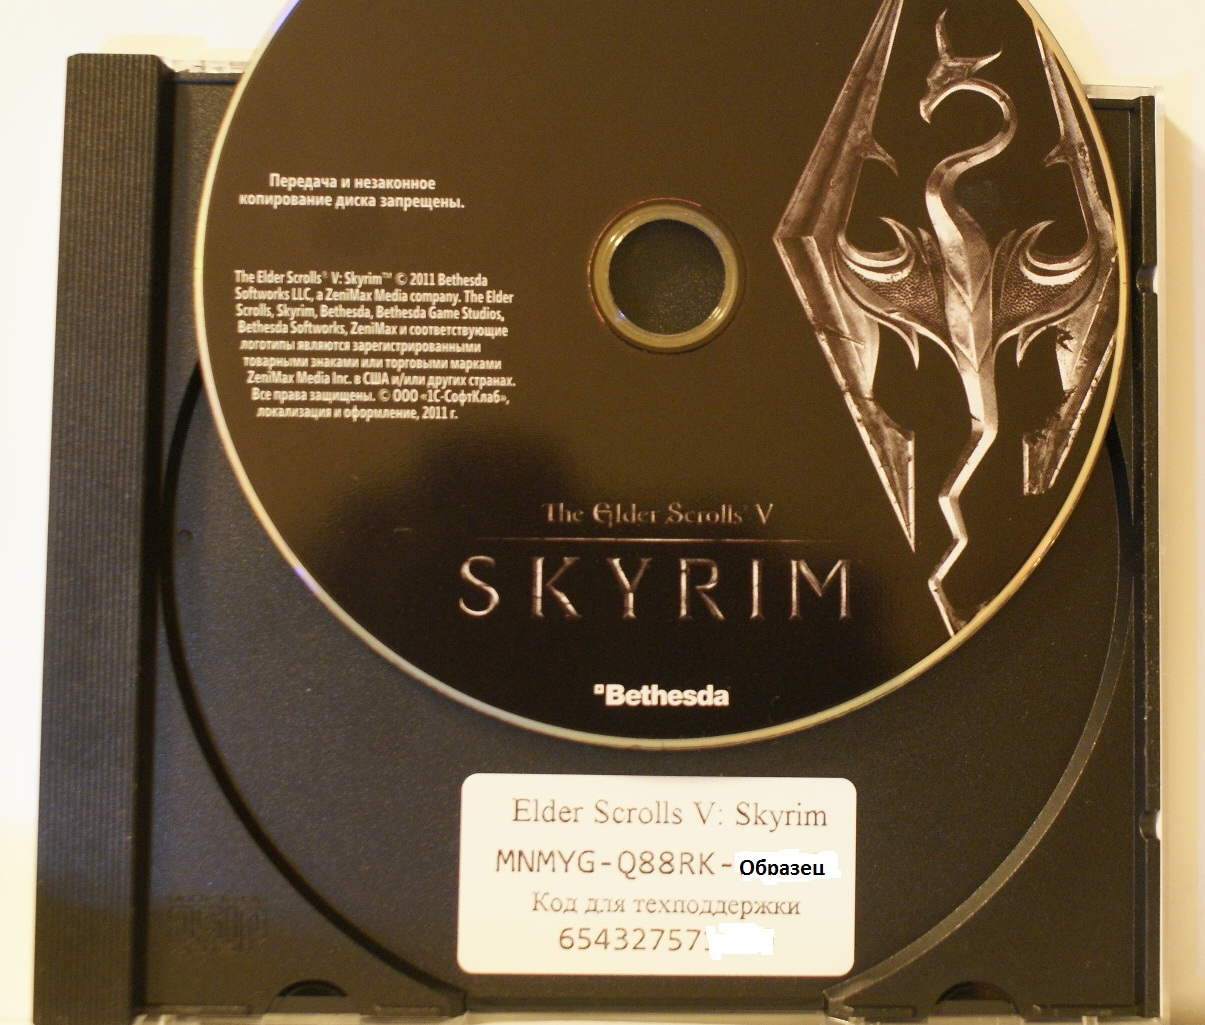 а The Elder Scrolls V: Skyrim. (Steam/1C/Foto) Скидки